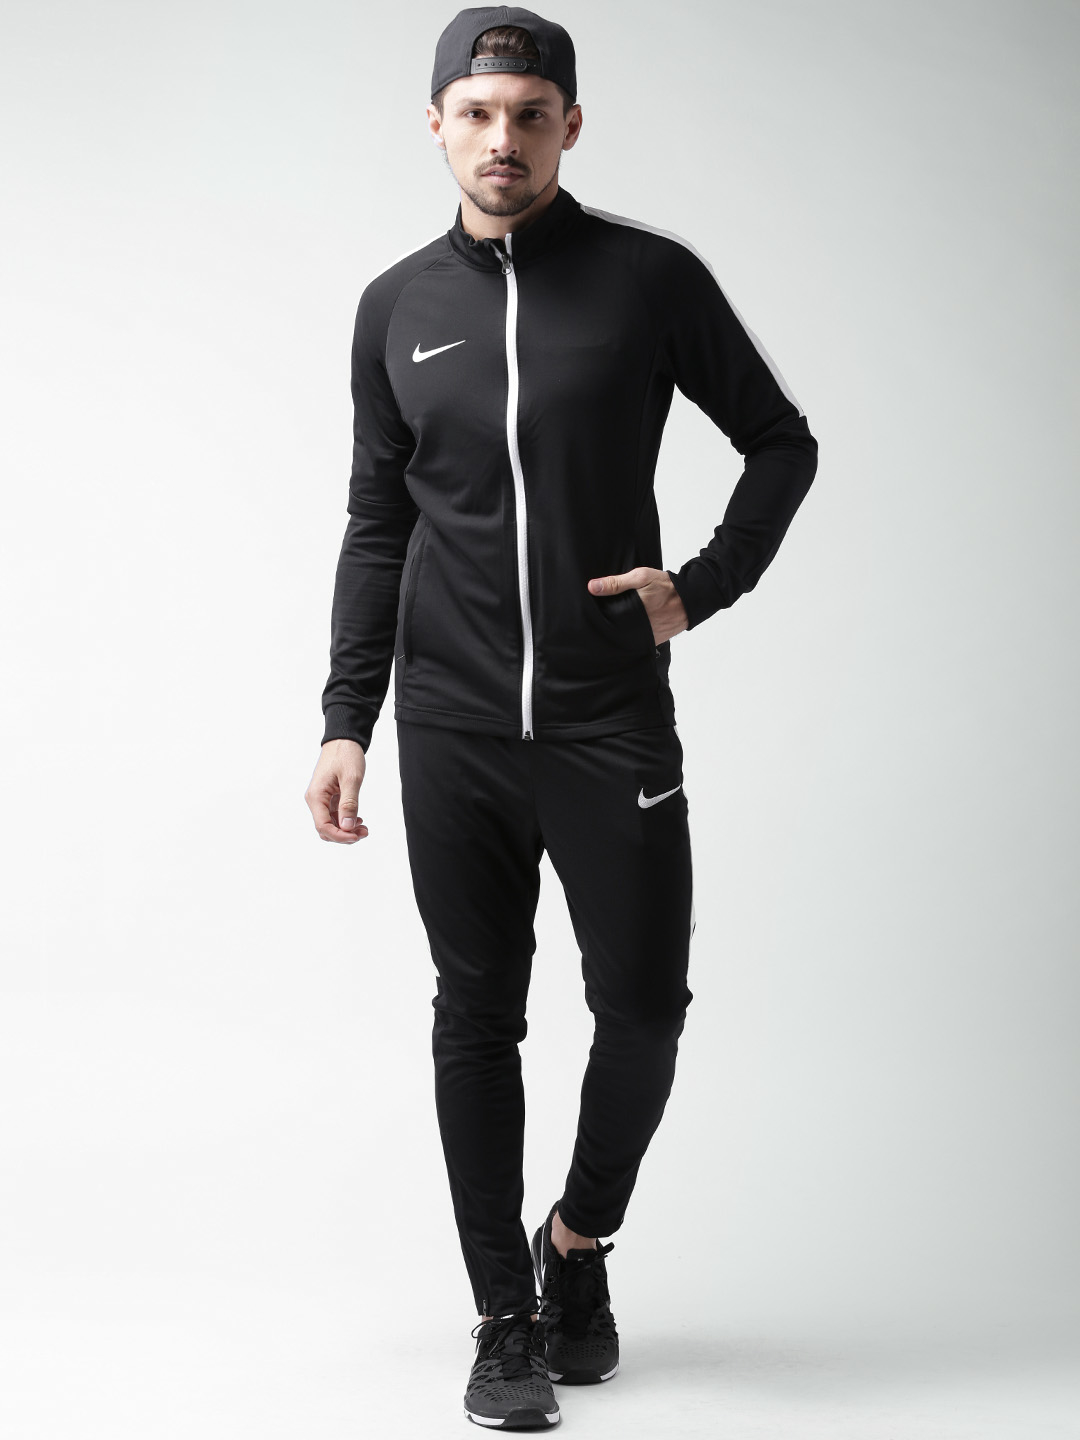 Sports Wear Collection For Men's